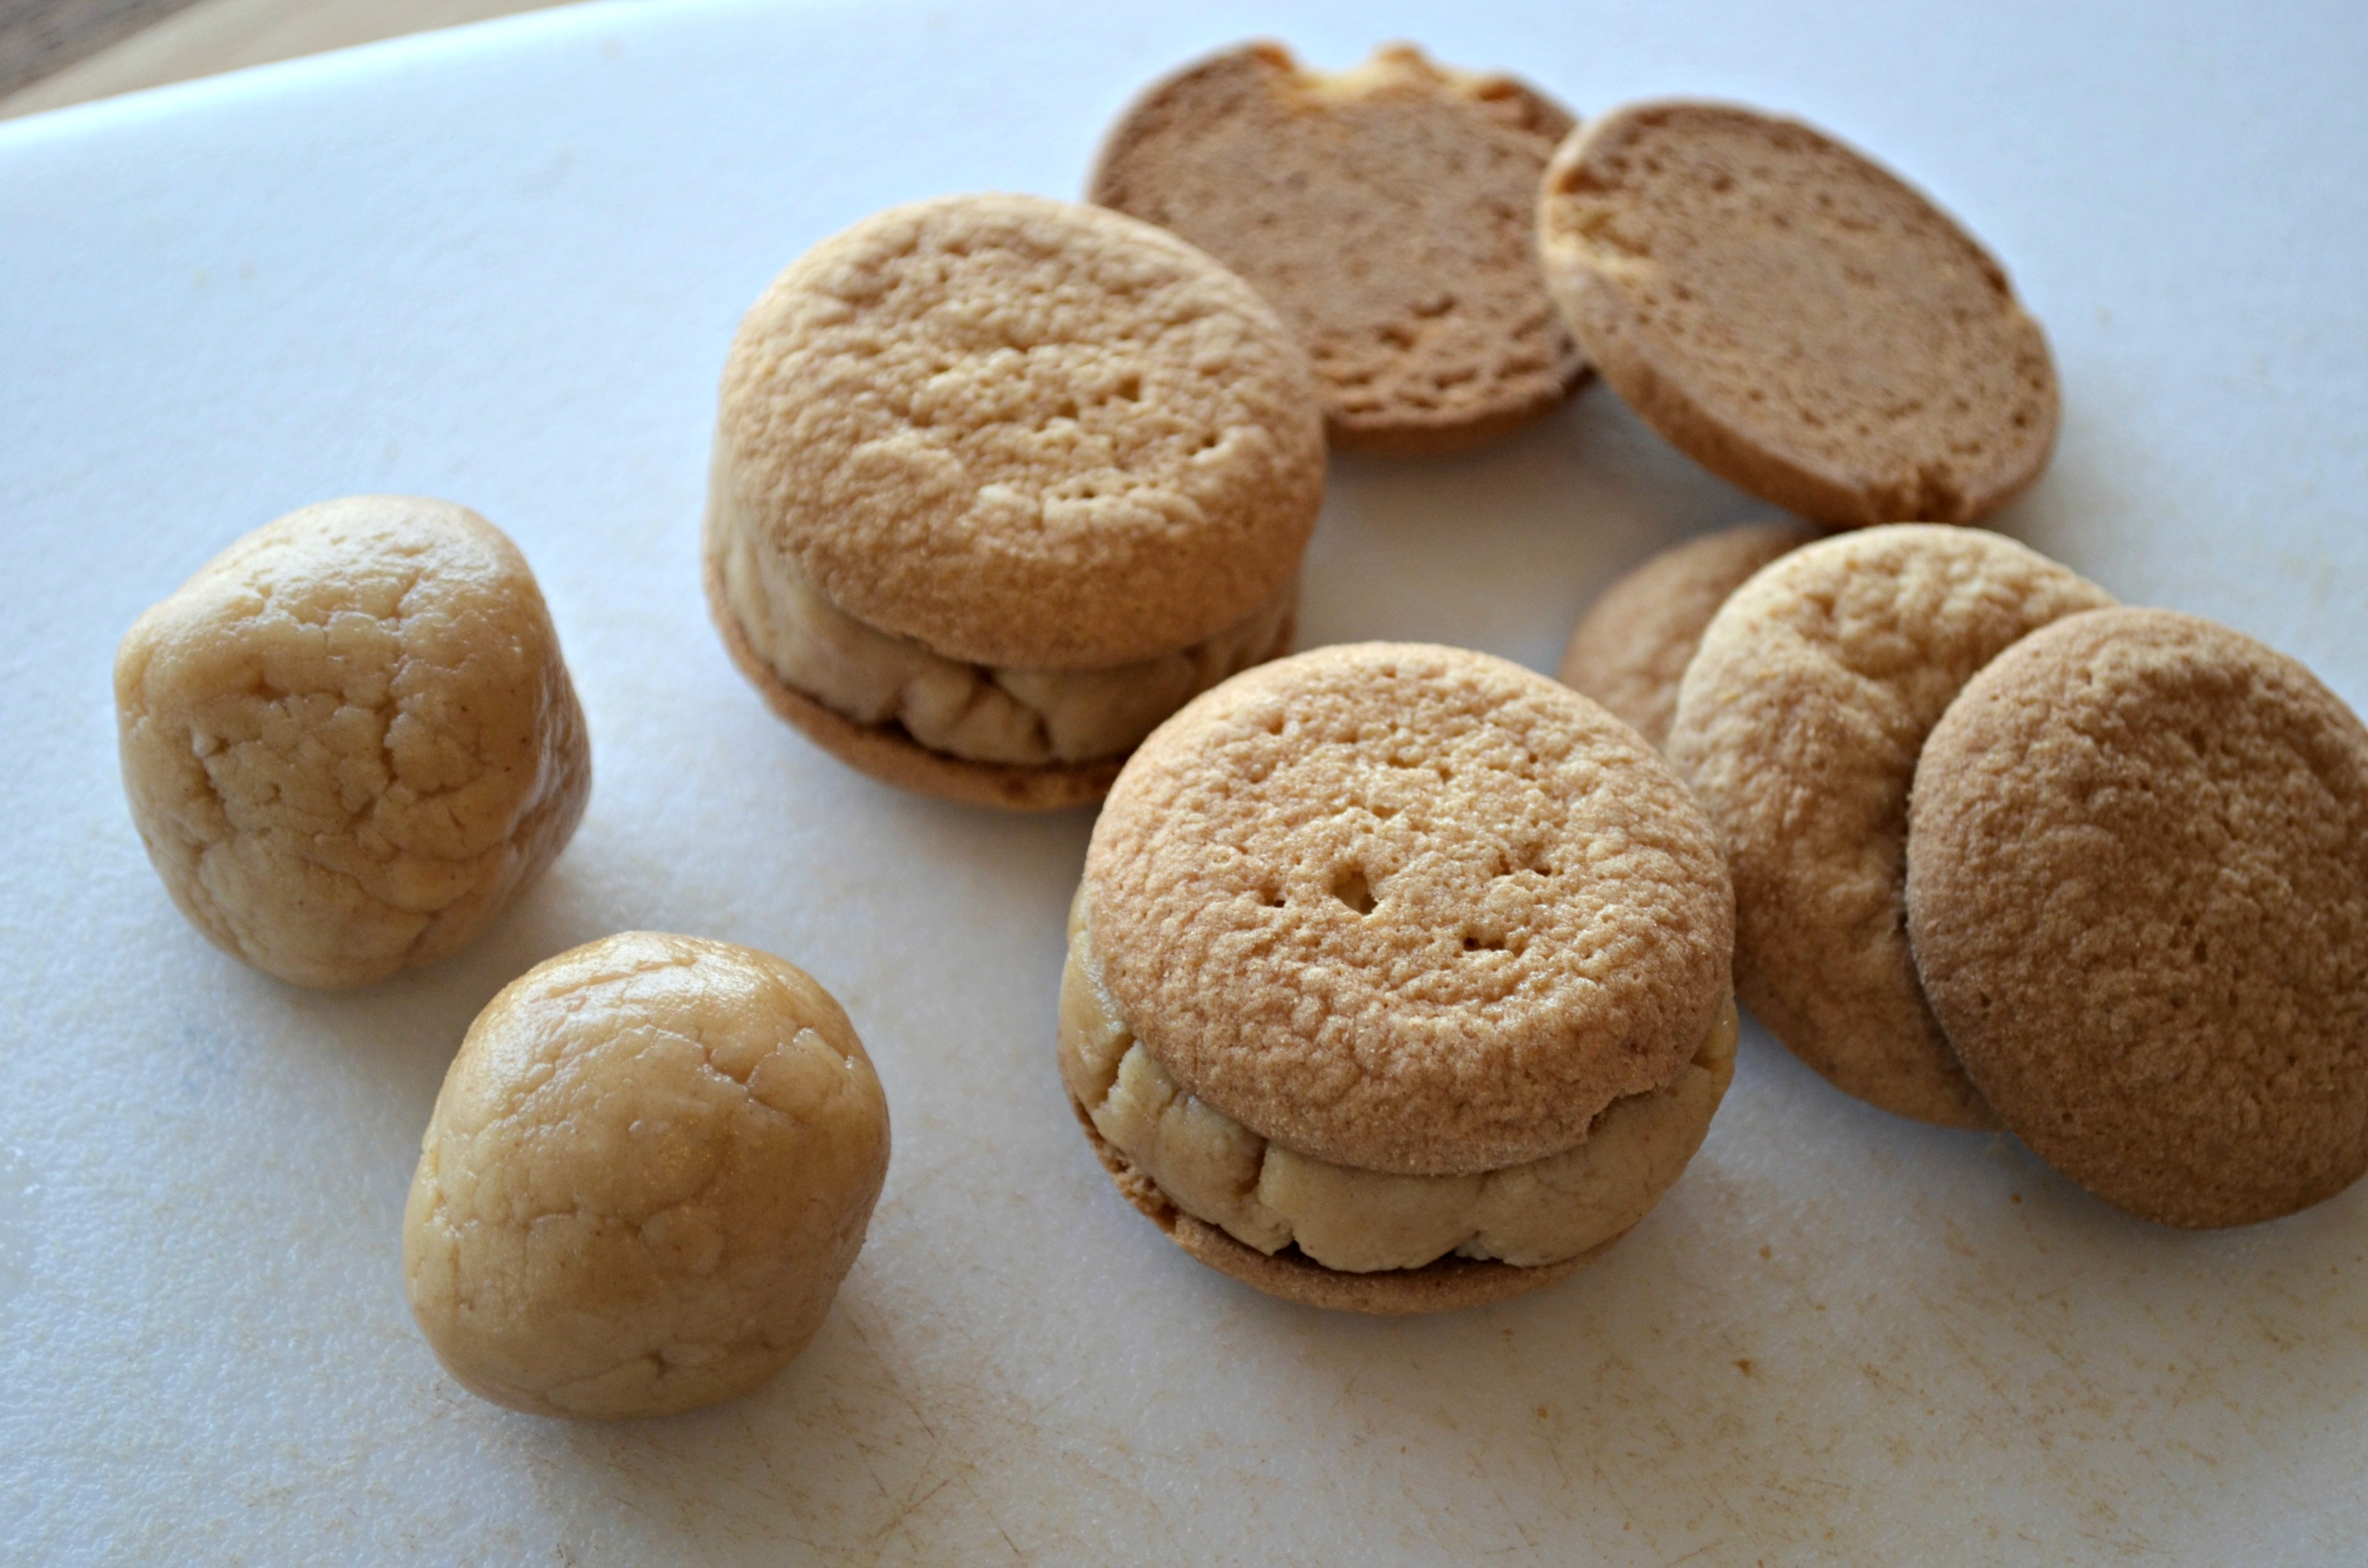 Peanut Butter Ball Cookies - Eat This Up